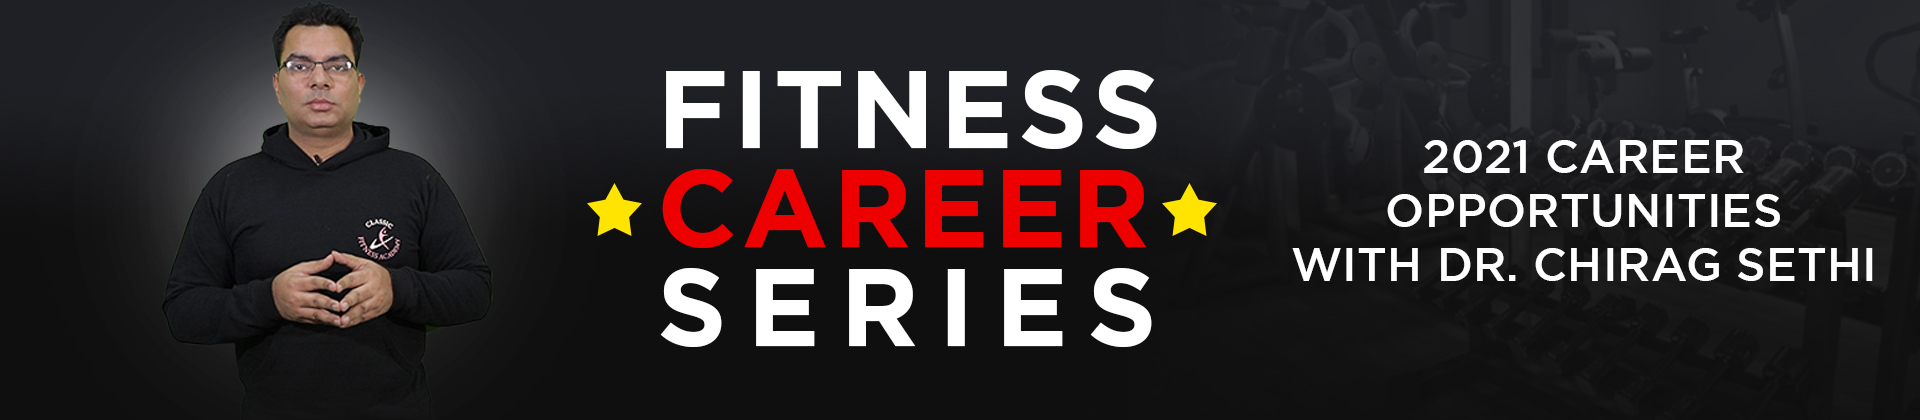 Fitness Career 2021 Opportunities